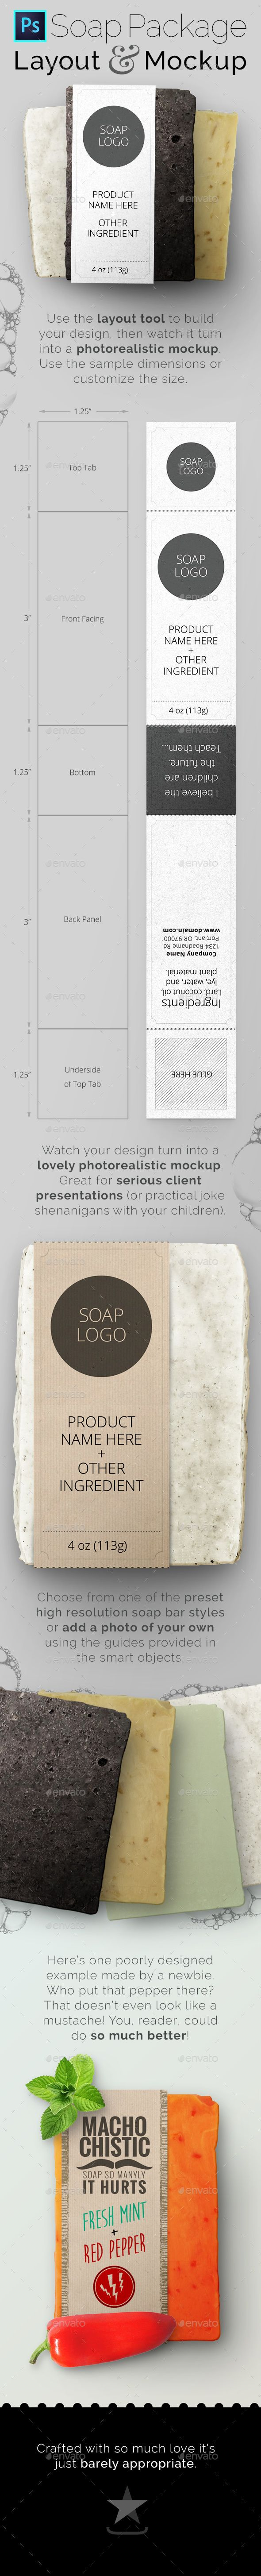 Soap Bar Package Tool and Mockup. Download here: http://graphicriver.net/item/soap-bar-package-tool-and-mockup/15955892?ref=ksioks